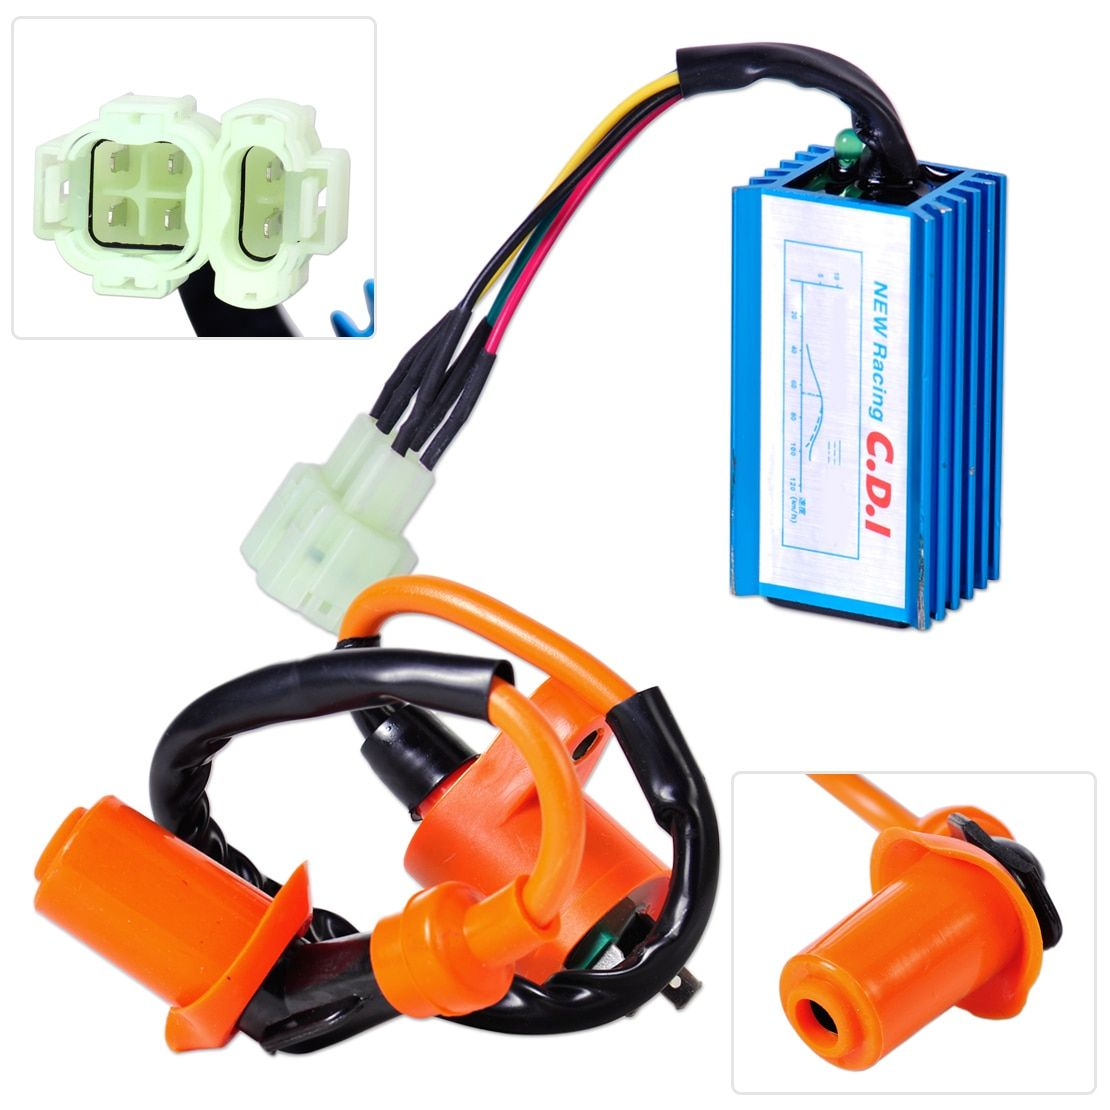 DWCX Motorcycle Racing Performance Ignition Coil + CDI Box for GY6 50cc 70cc 90cc 125cc 150cc Scooter Go Kart Moped Dirt bike